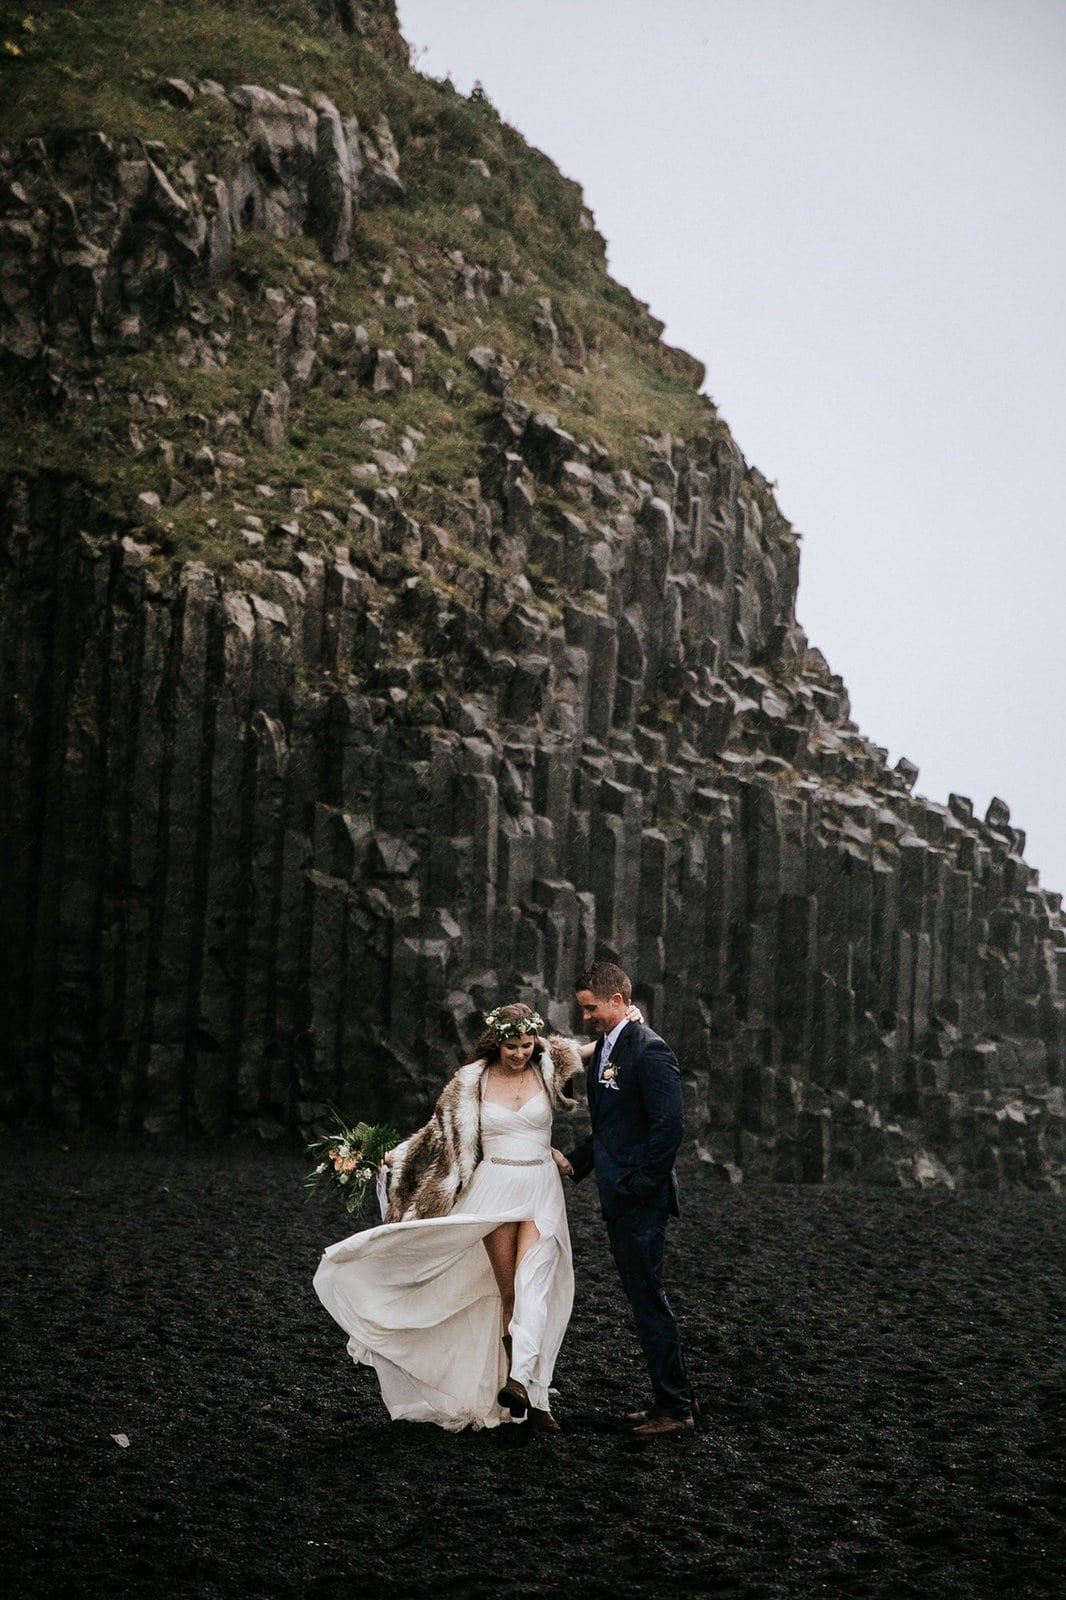 Bride and groom at Reynisfjara beach